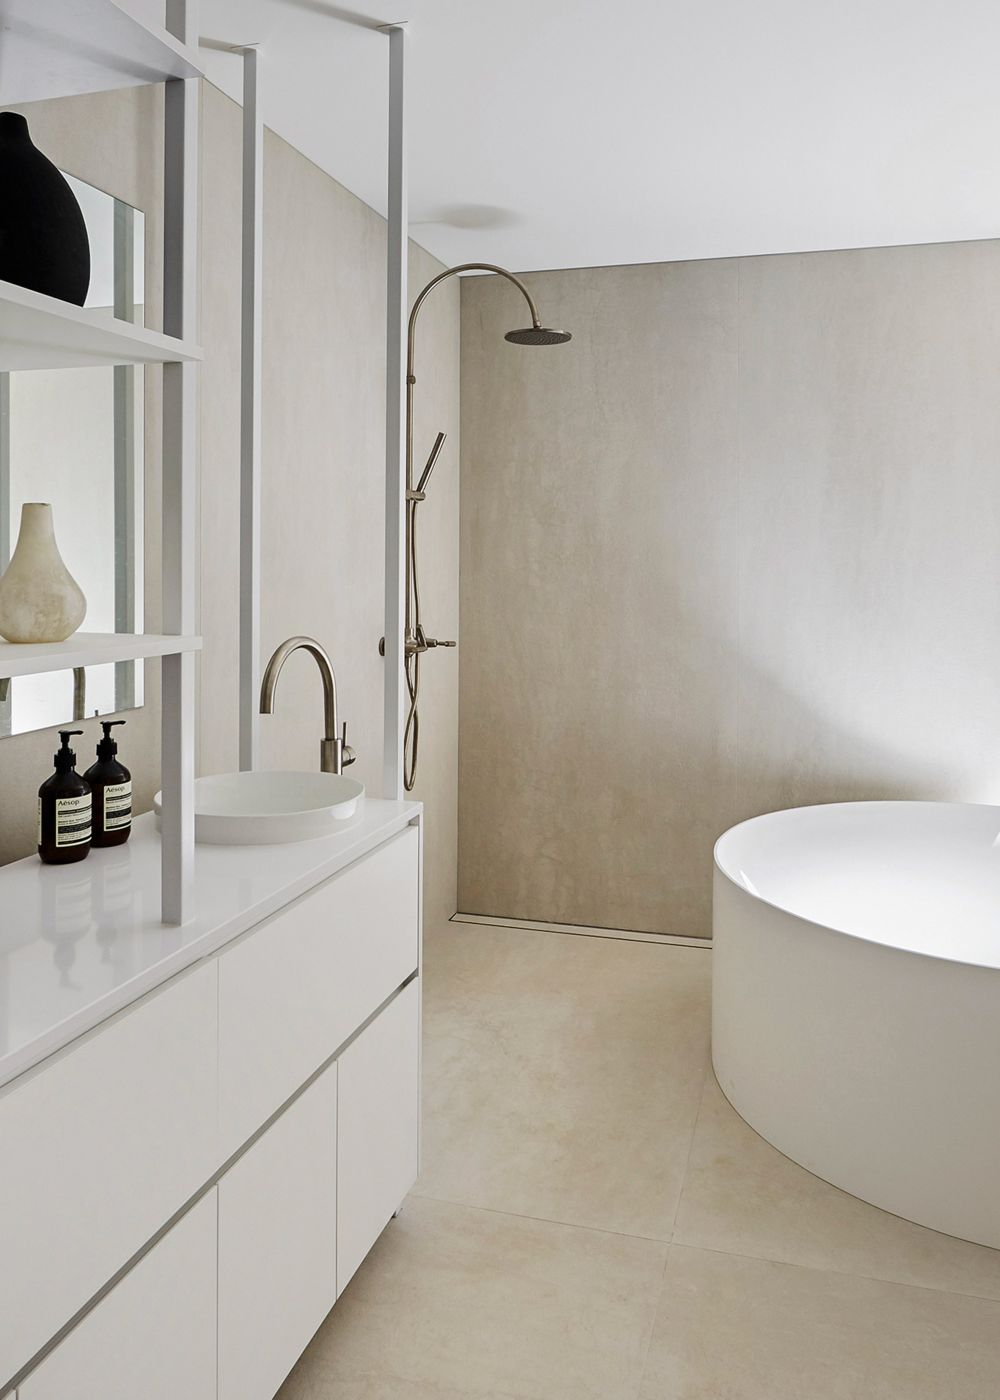 White is the predominant color featured throughout the house, complemented by black and warm neutrals